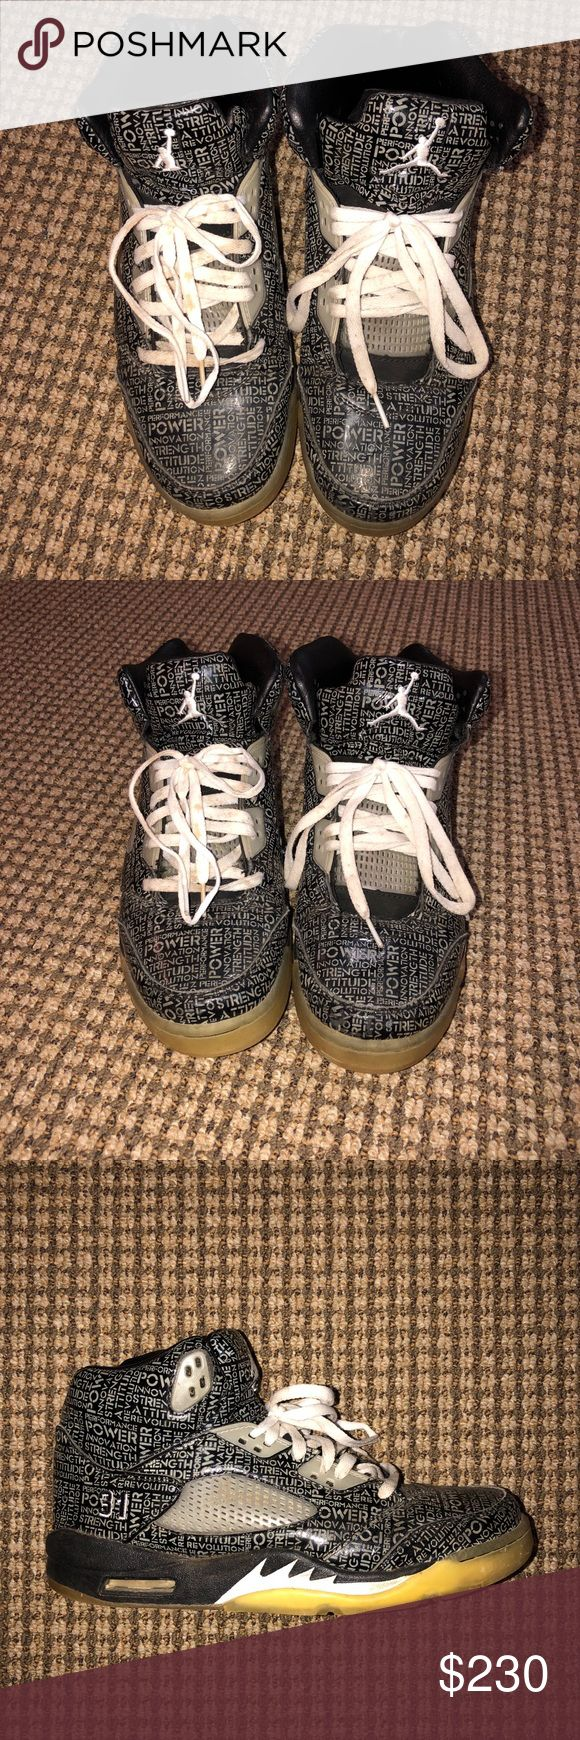 ✨Air Jordan Doernbecher 5 Glow in the Dark✨ Glow in the dark. Condition 7/10, the shoe is almost perfect the laces just need a little wash. Barely worn. Super dope shoe, selling at a great discount! Jordan Shoes Athletic Shoes